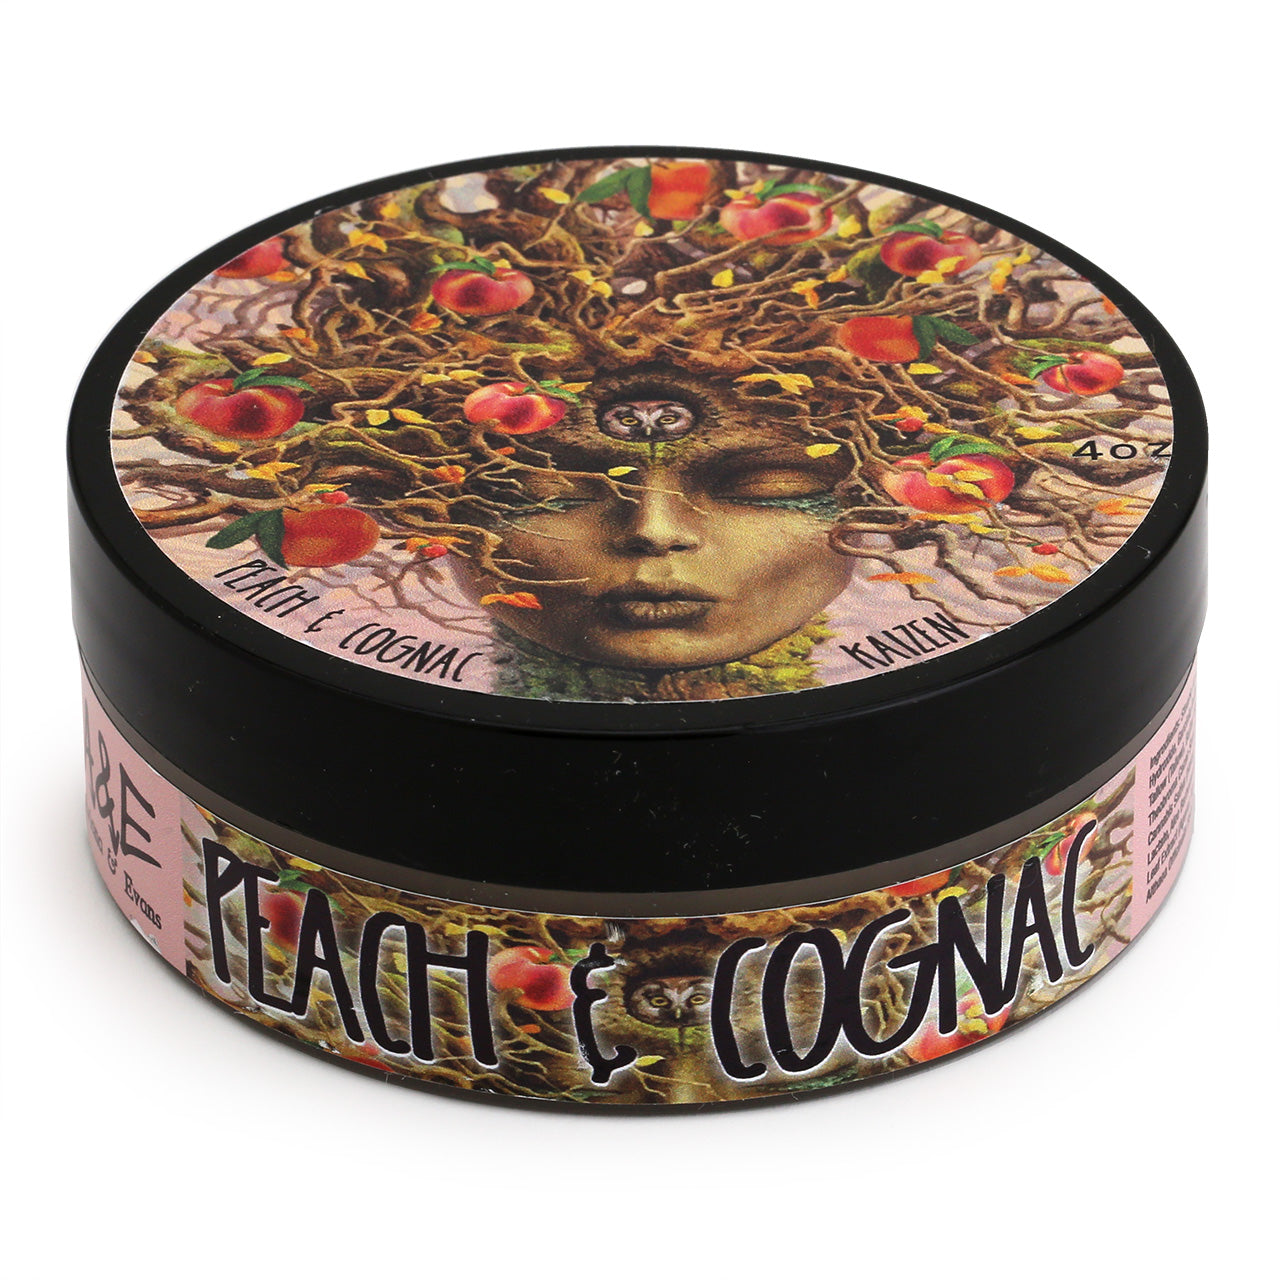 Ariana & Evans Shave Soap Peach Cognac - 118ml Tub top view